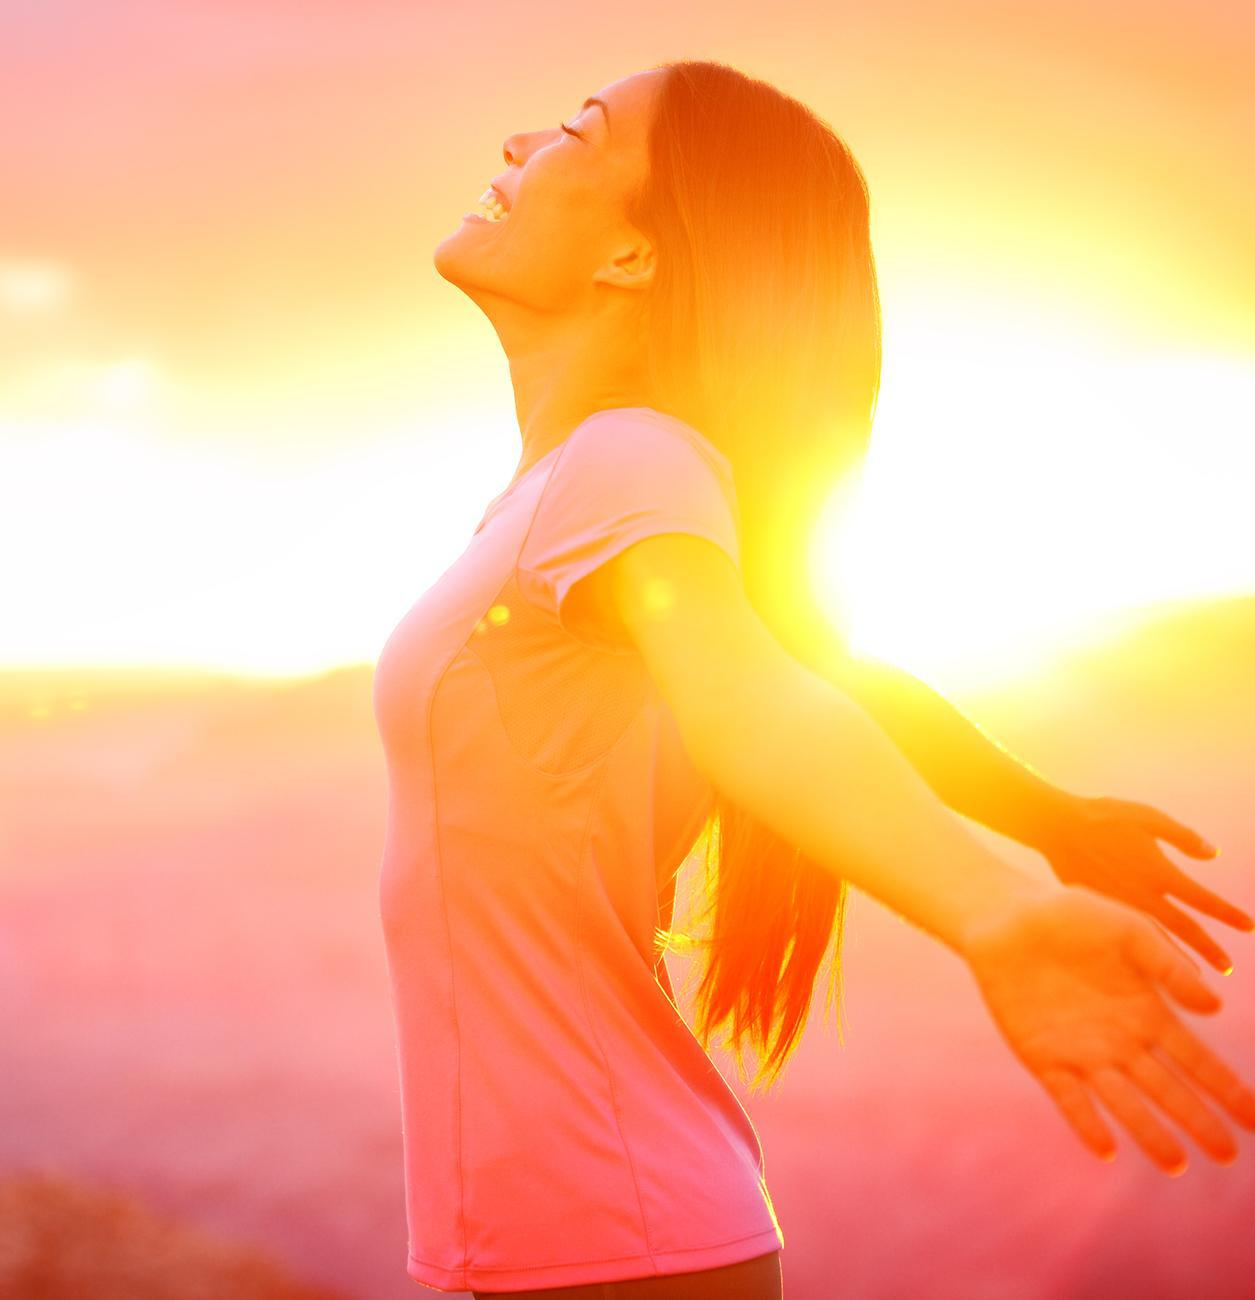 A woman shows a happy and relaxed expression with arms outstretched, on the beach at sunset.